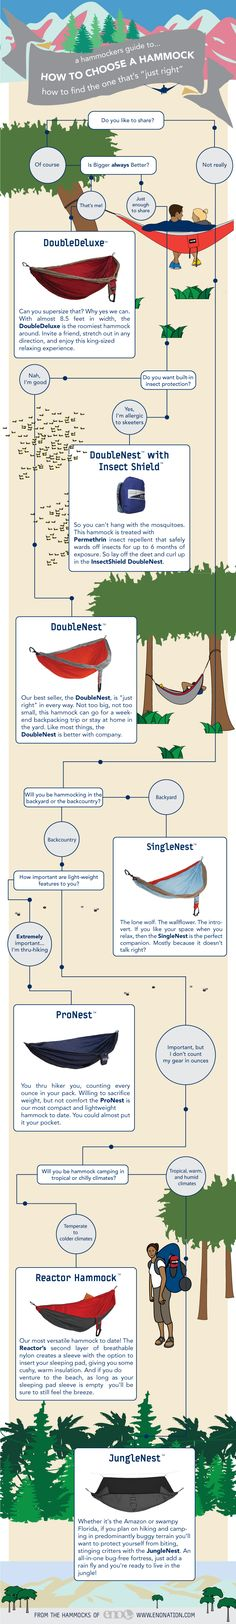 """How to Choose a Hammock - find the one that's """"Just Right""""!"""